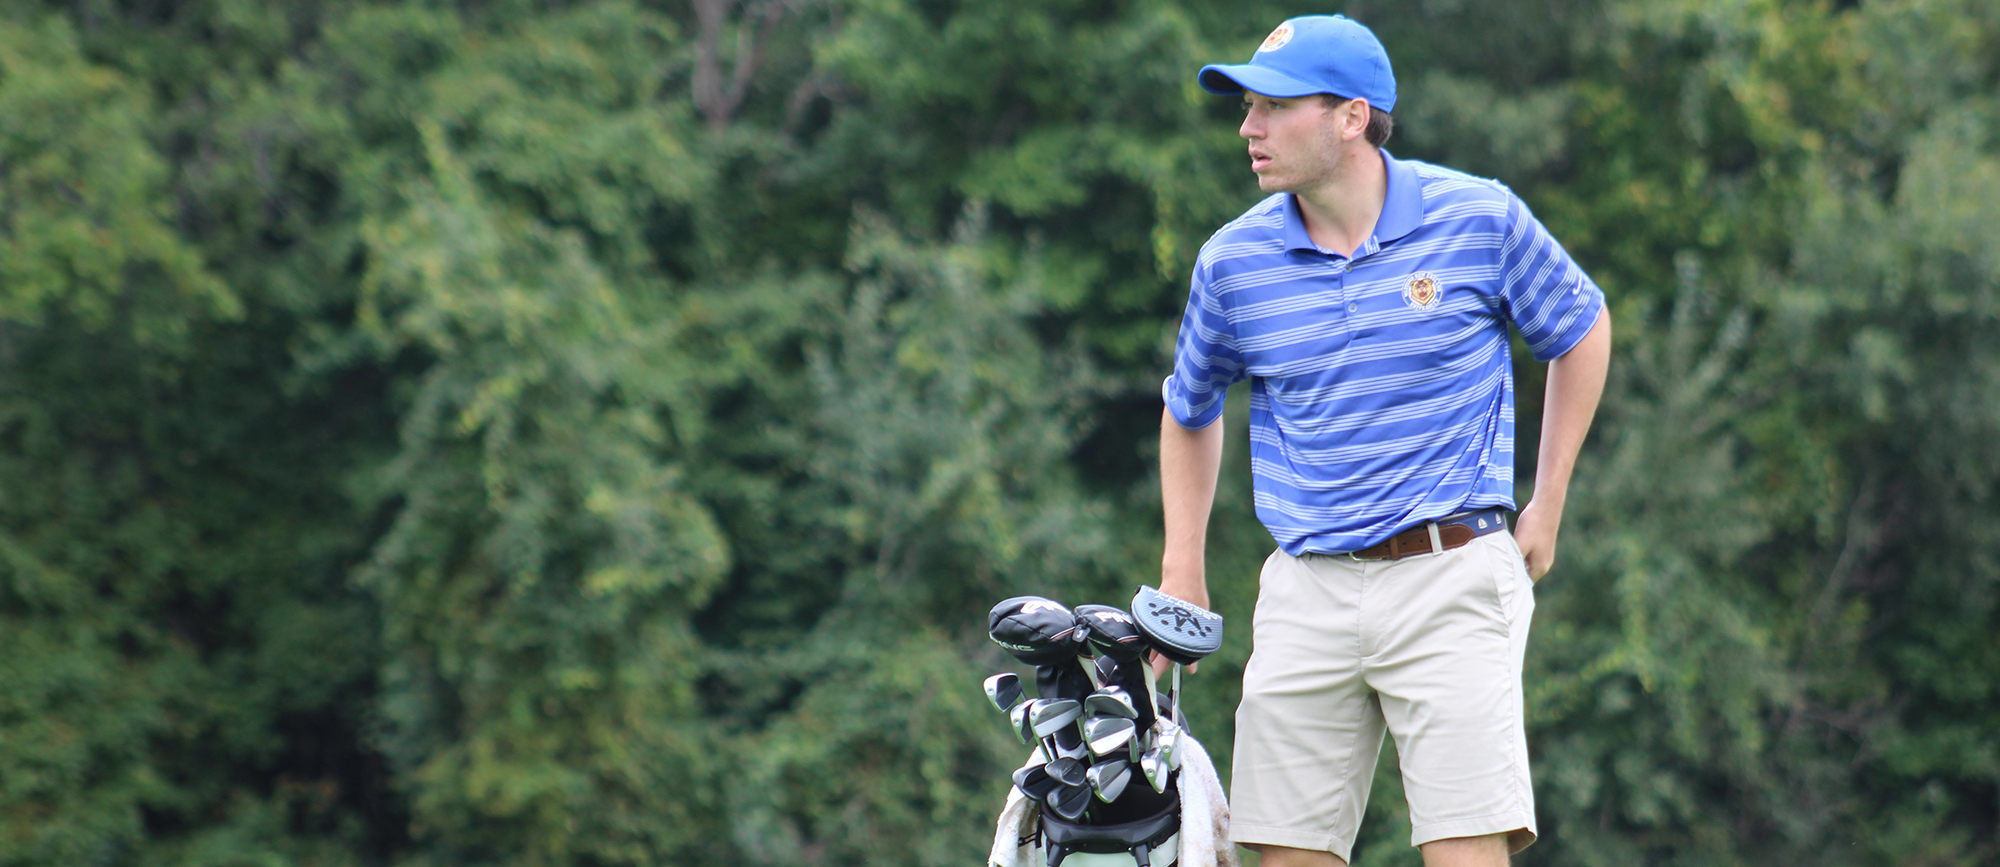 Sophomore Ryan Zogby shot an opening round 78 on Saturday at the Williams Fall Invitational. (Photo by Erin Stanton)